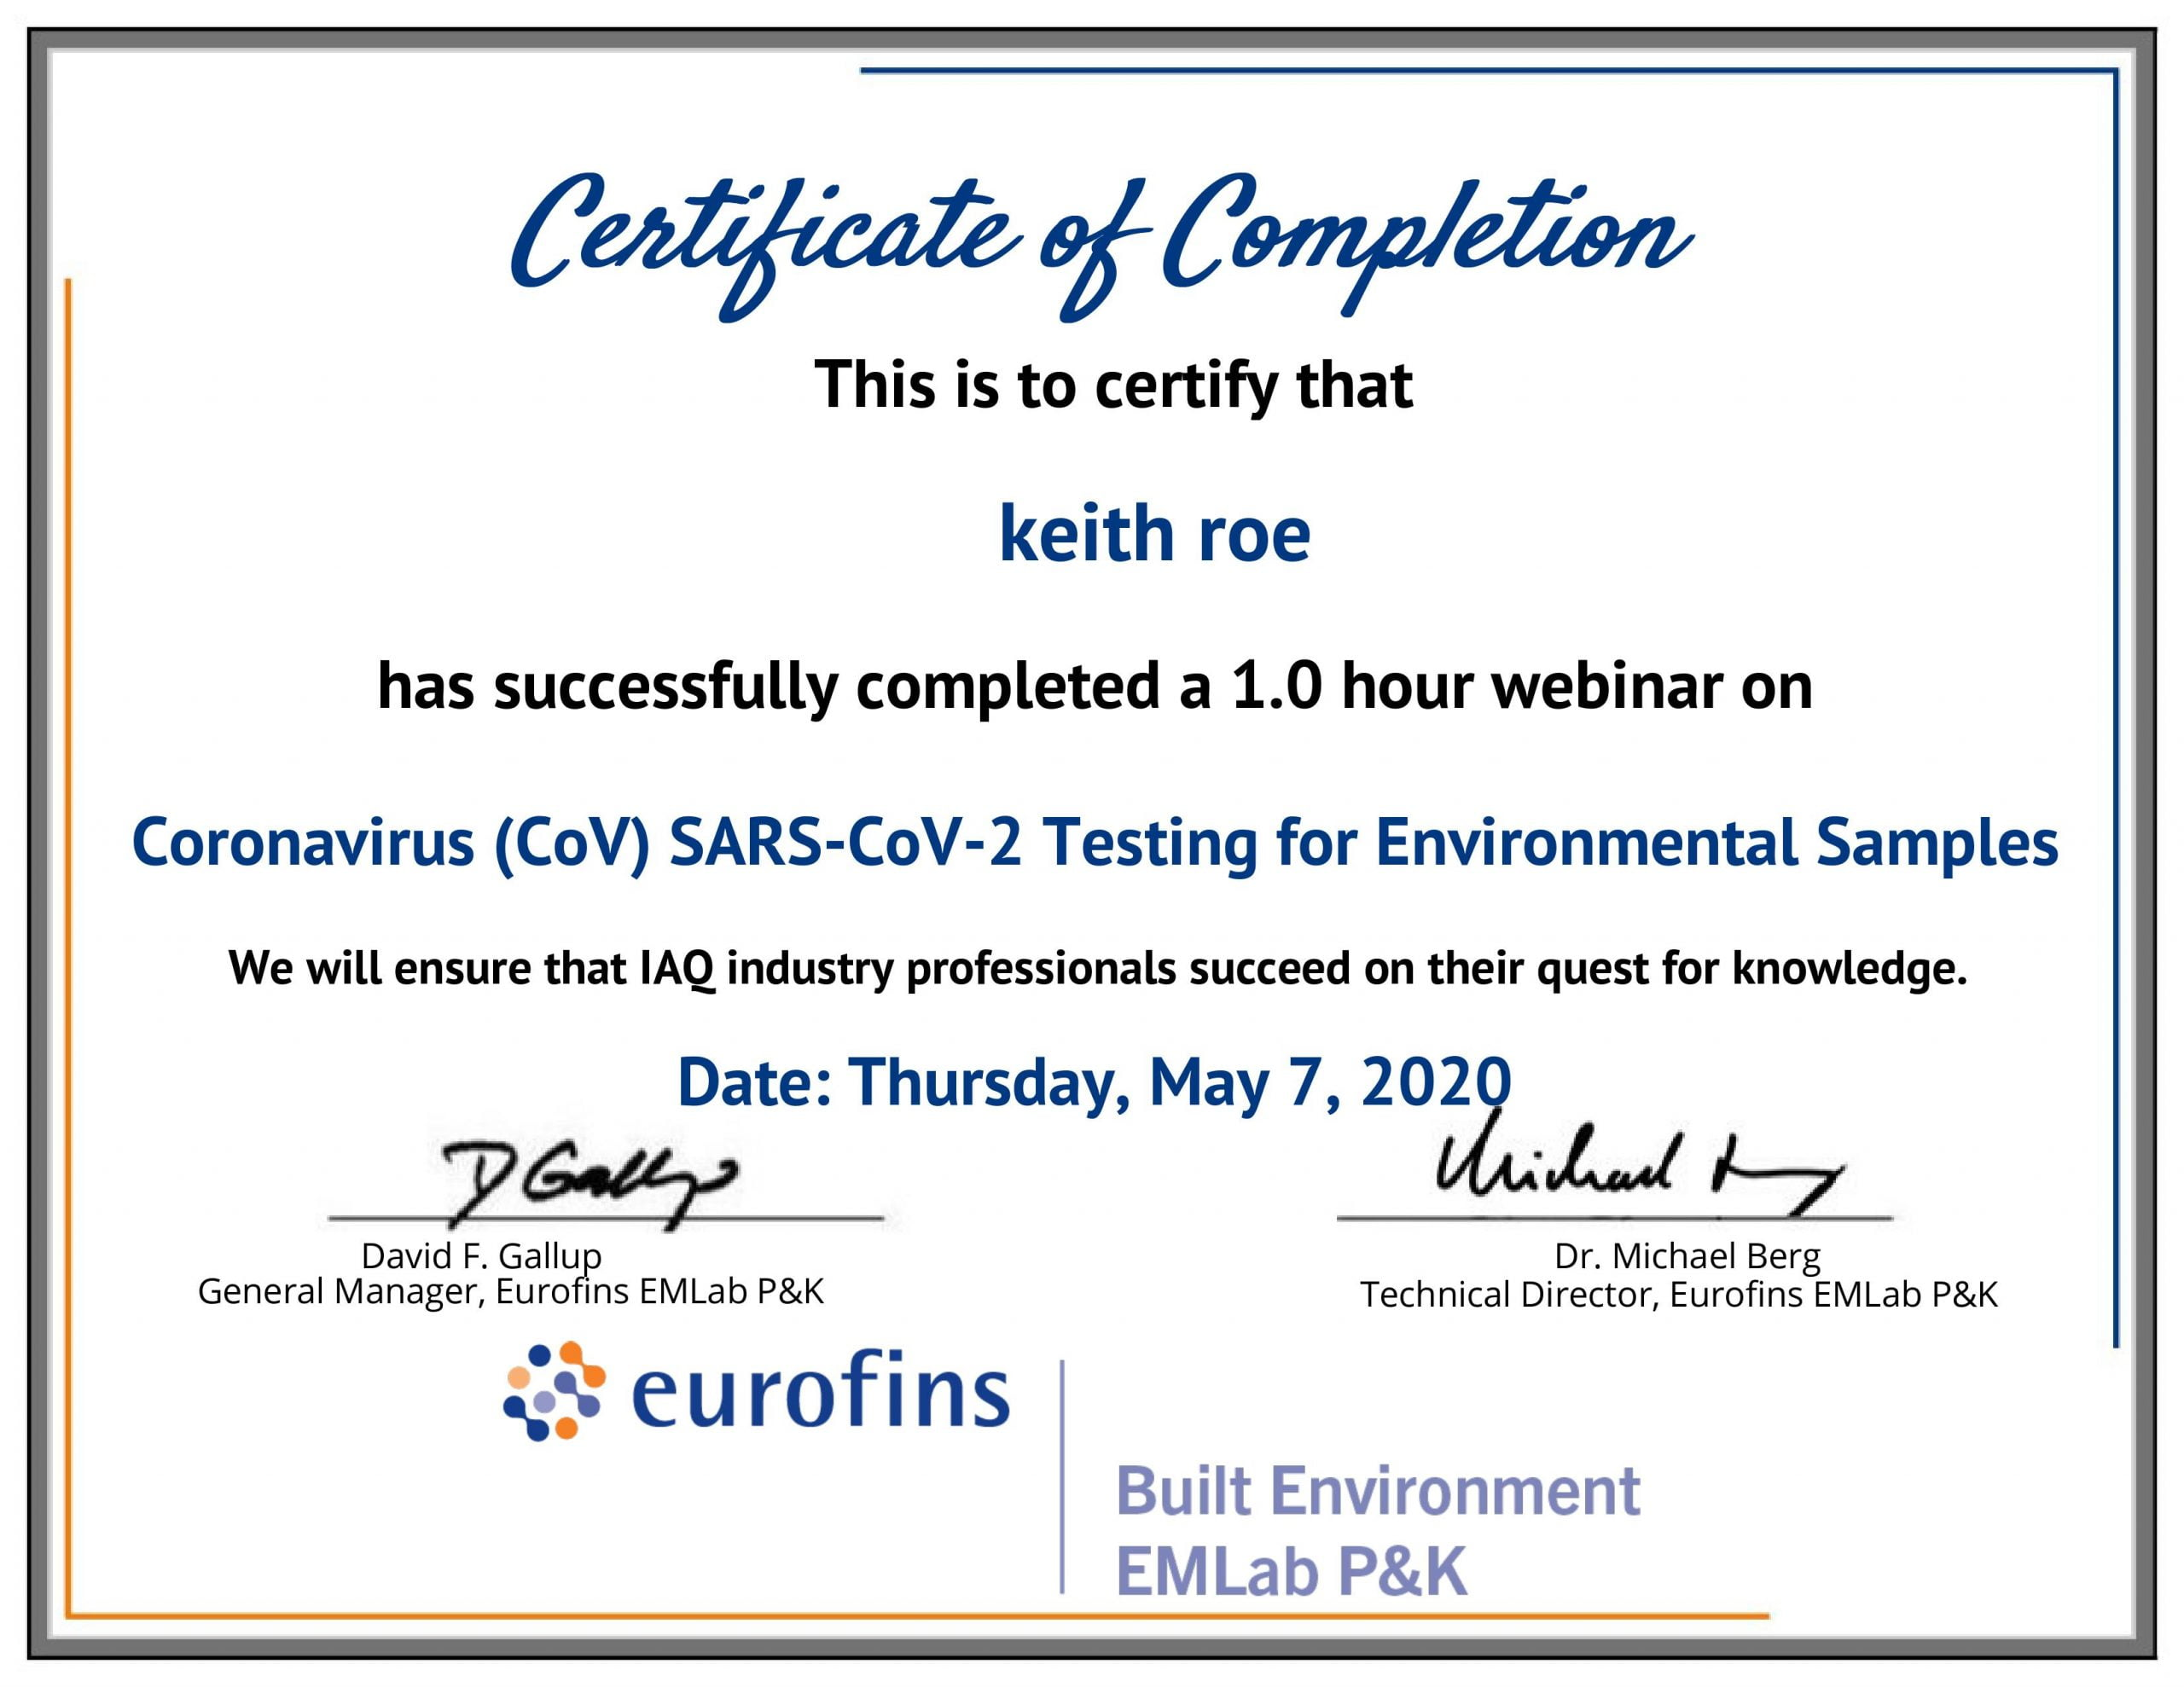 Keith Roe Certificate of completion on COVID-19 testing for environmental samples